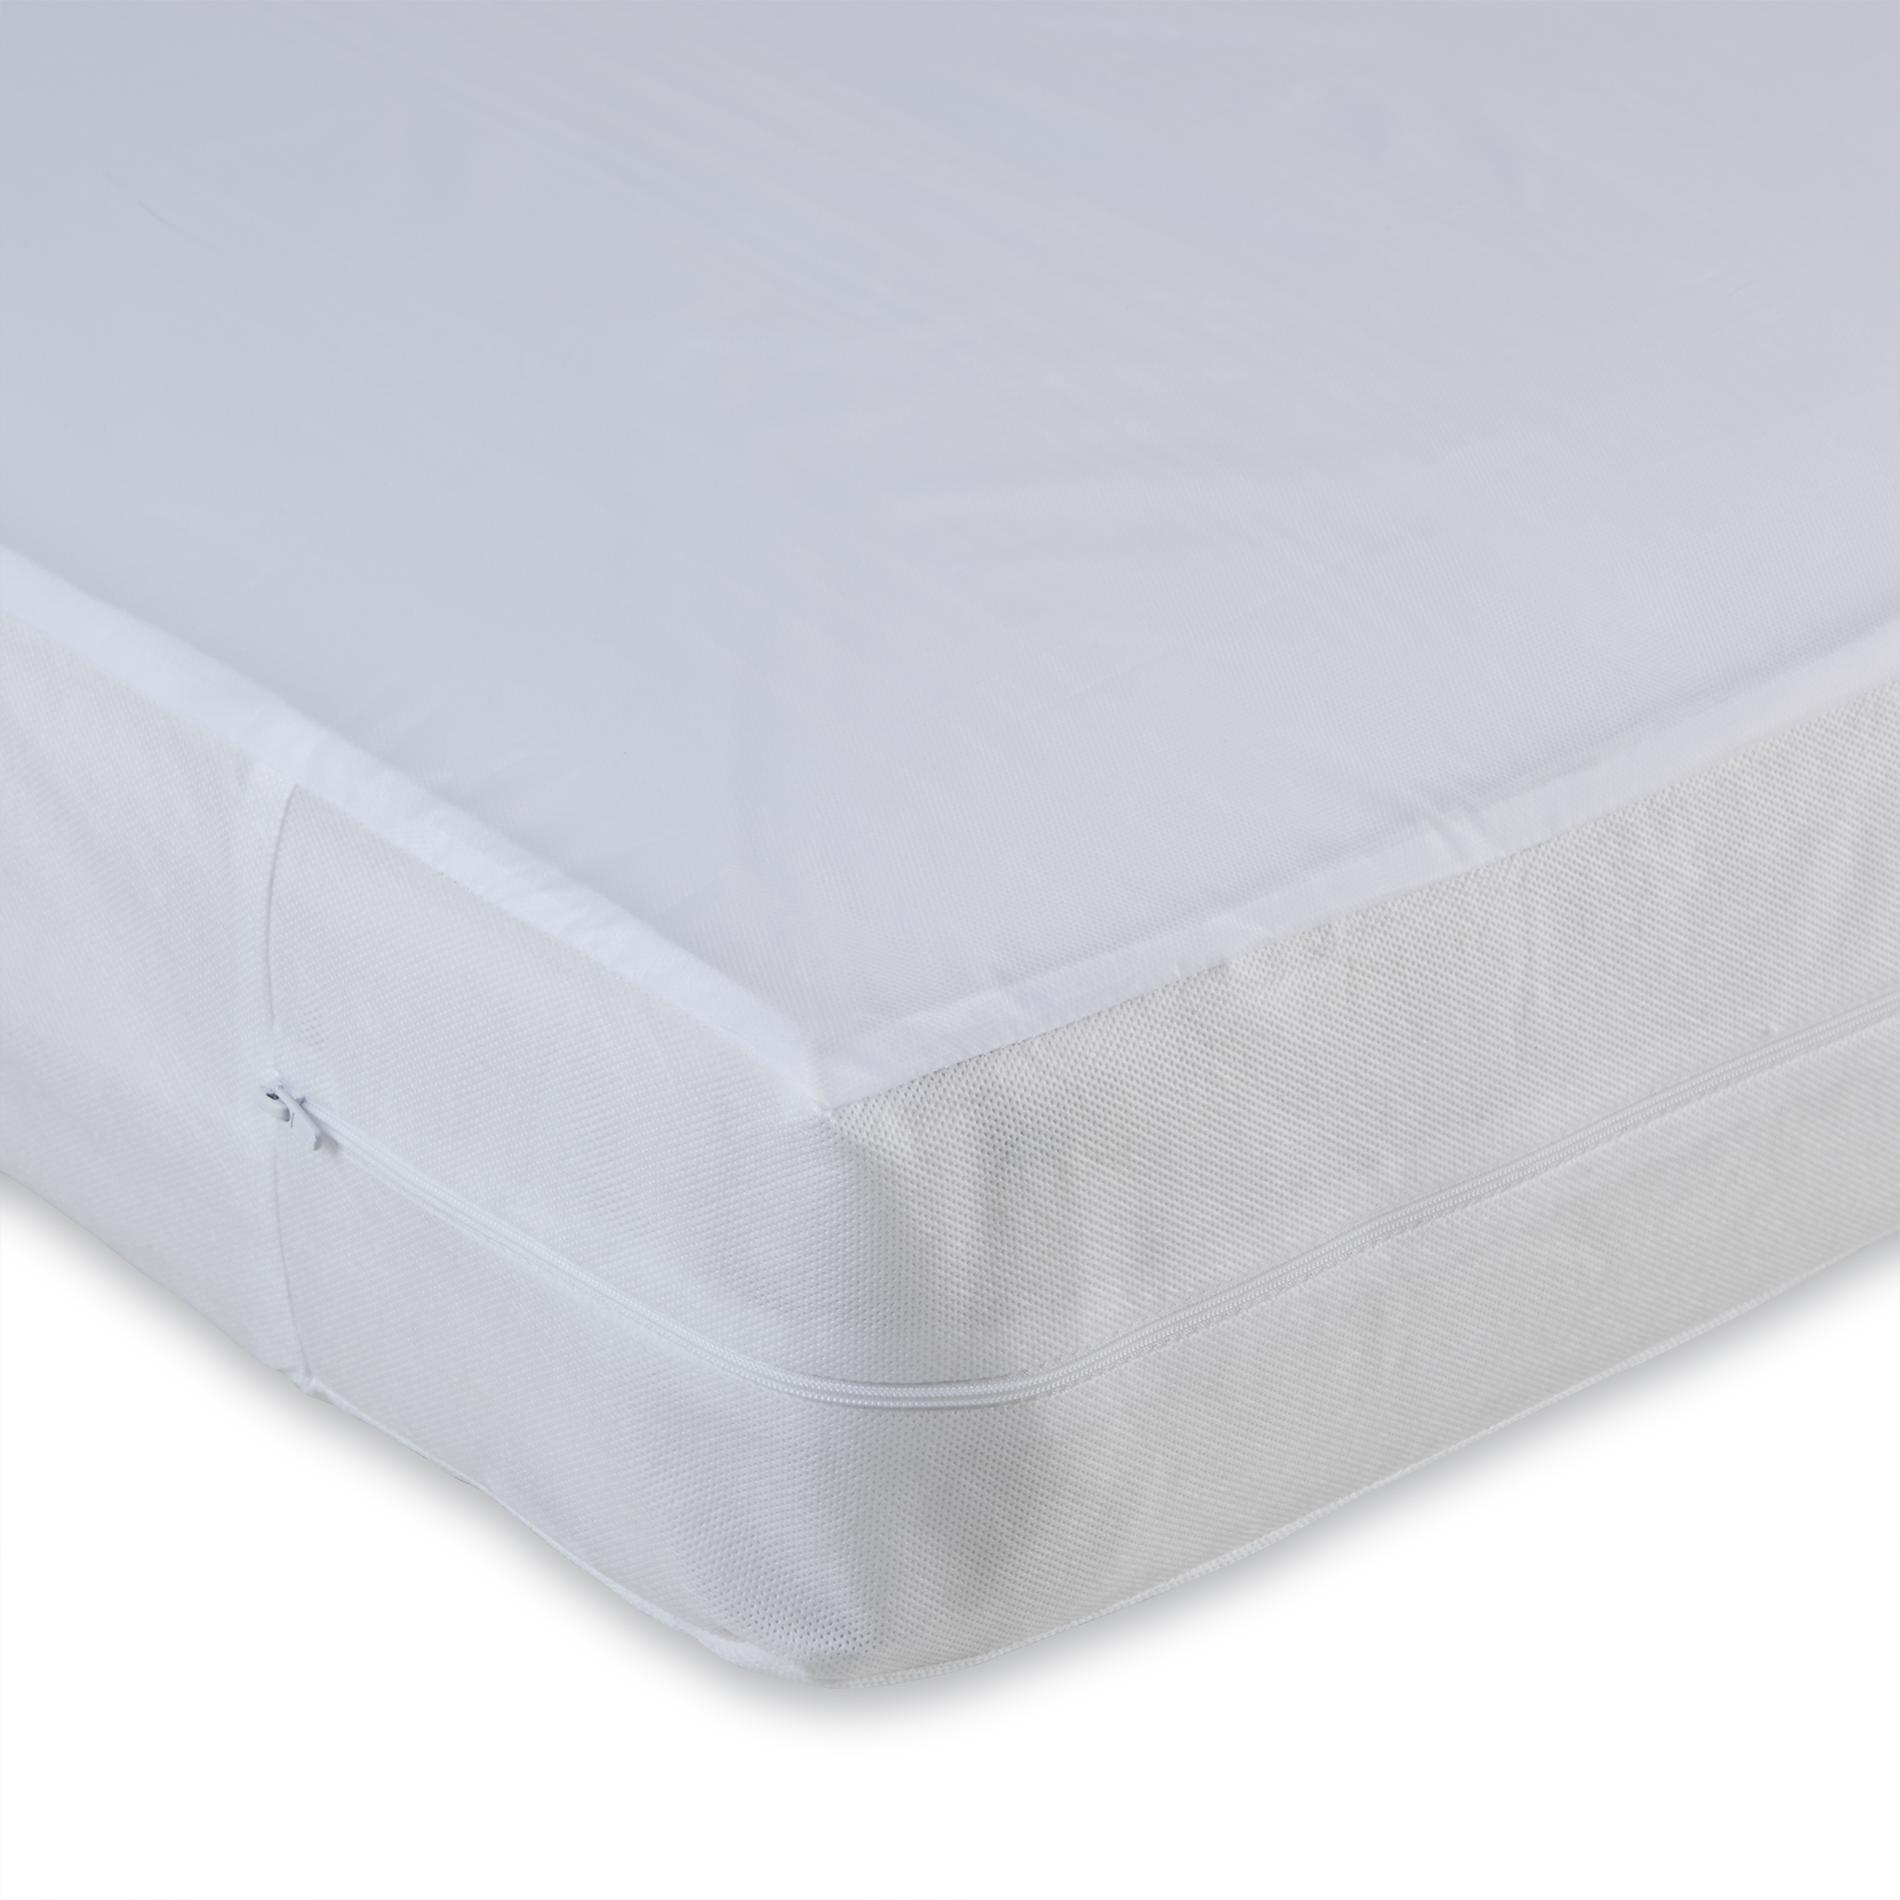 furniture baby breathable s protector crib mattress best camping sleigh costco mothercare cot size organic nursery bed